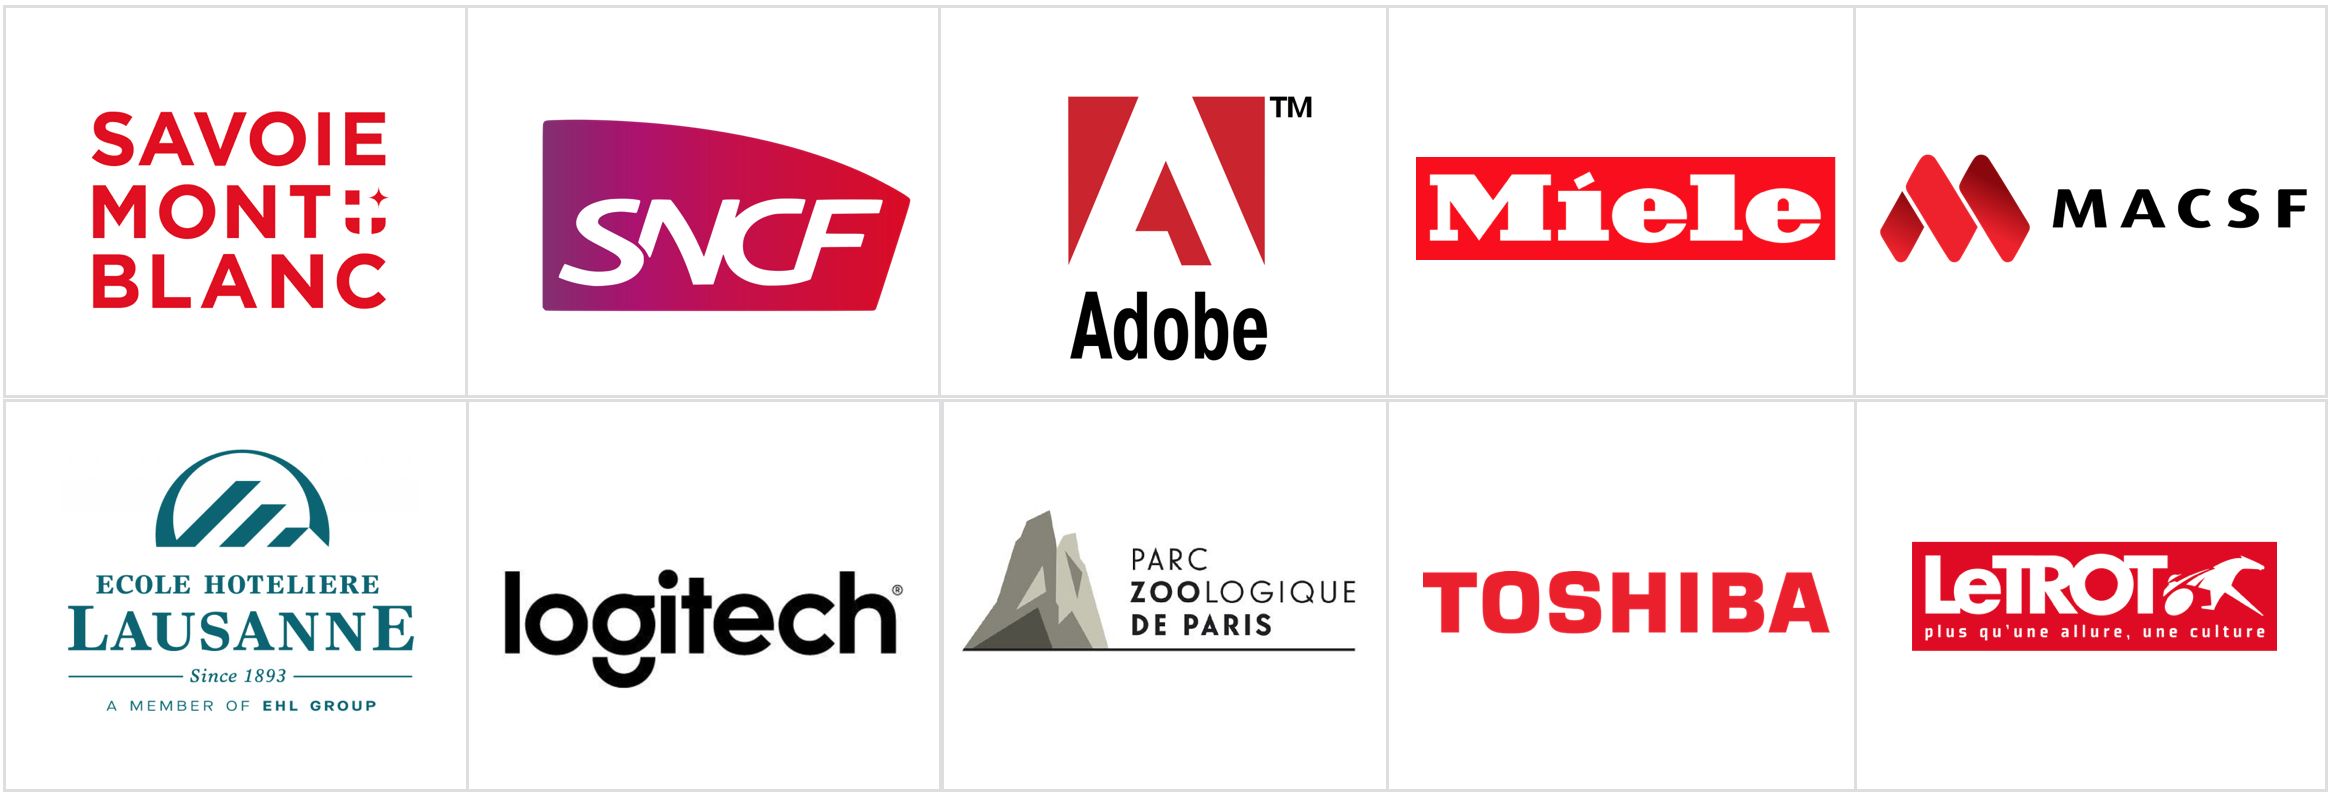 agence search marketing eficiens references alt